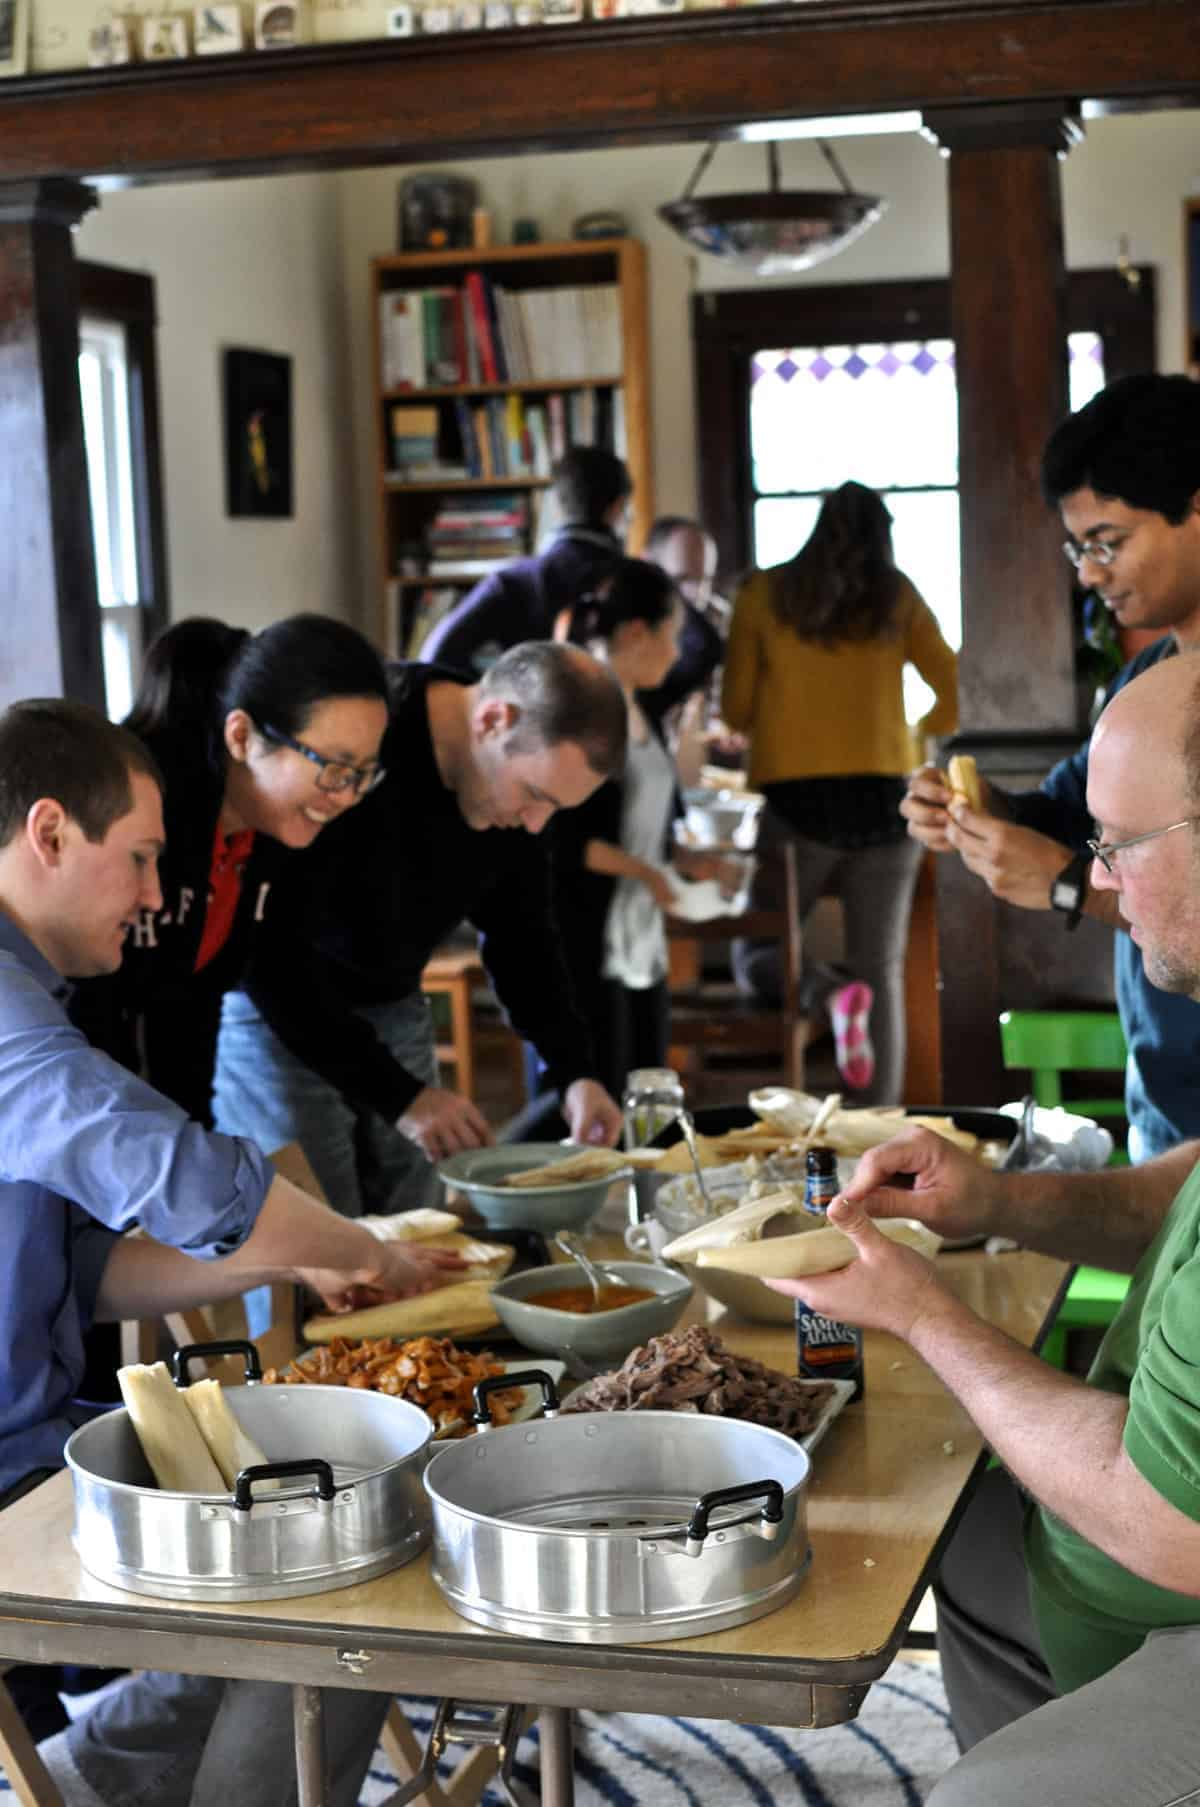 Several people gathered around a folding table making tamales.